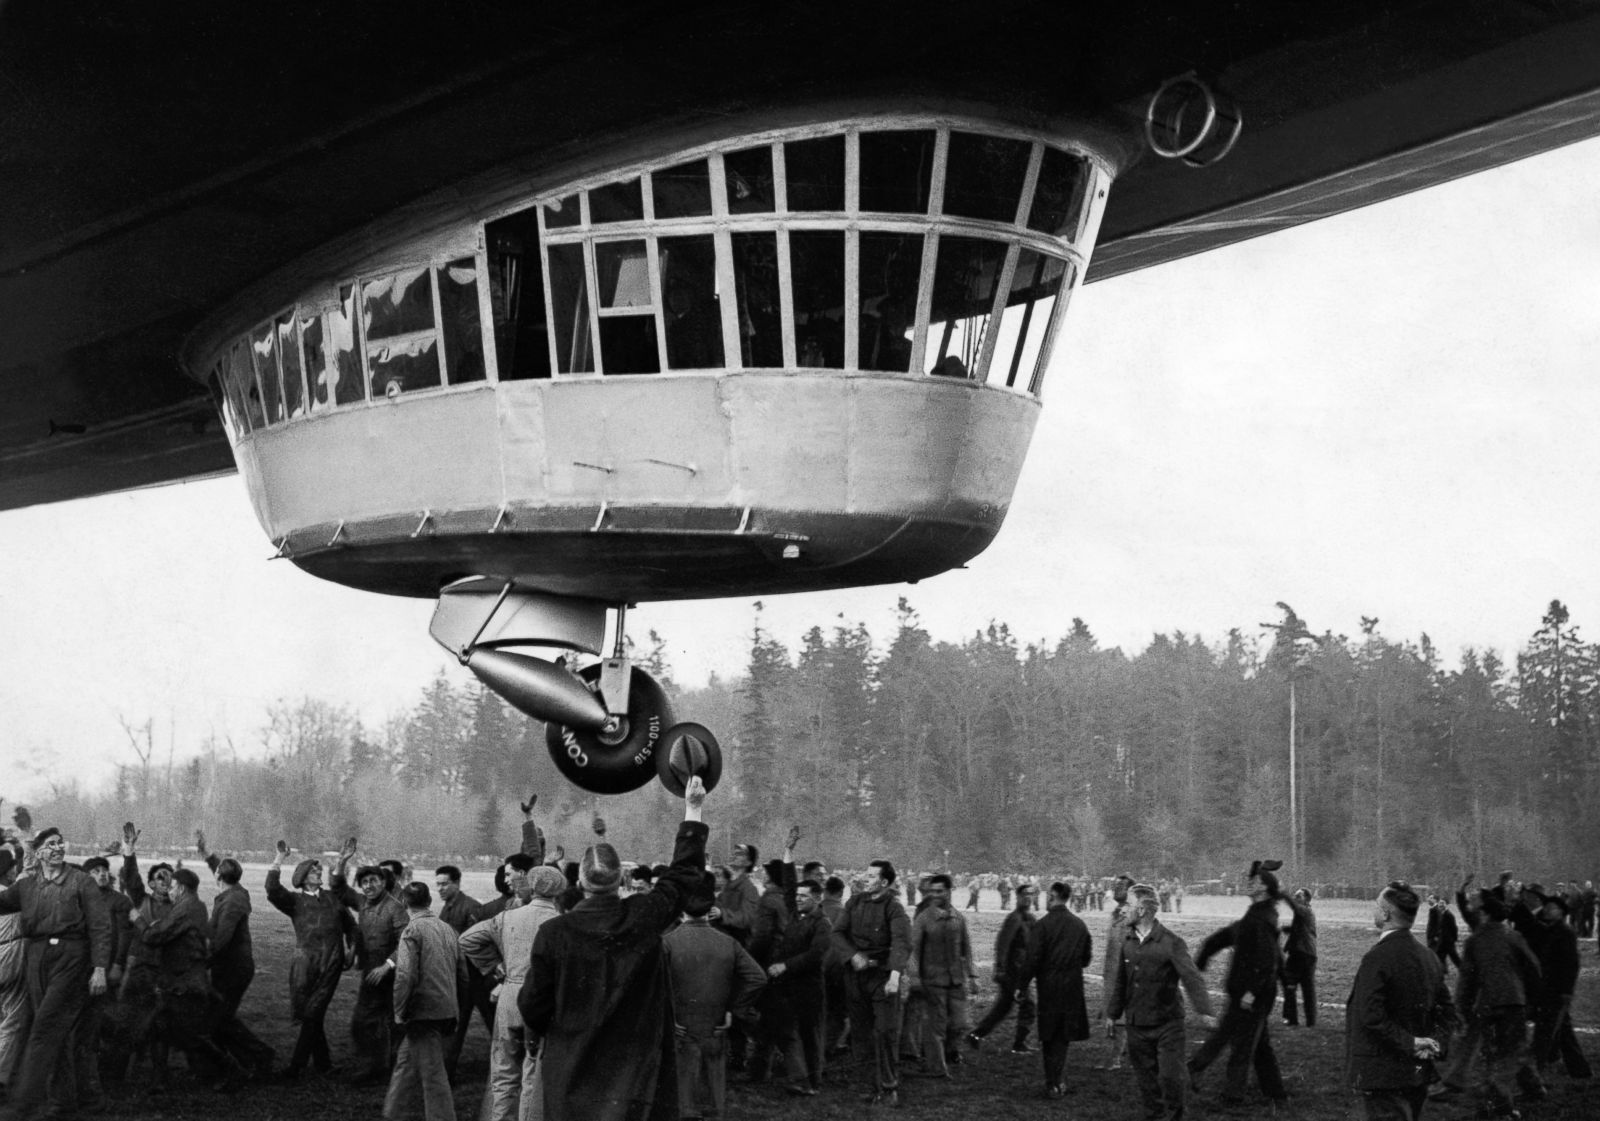 Picture | The Hindenburg Took Flight 80 Years Ago - ABC News